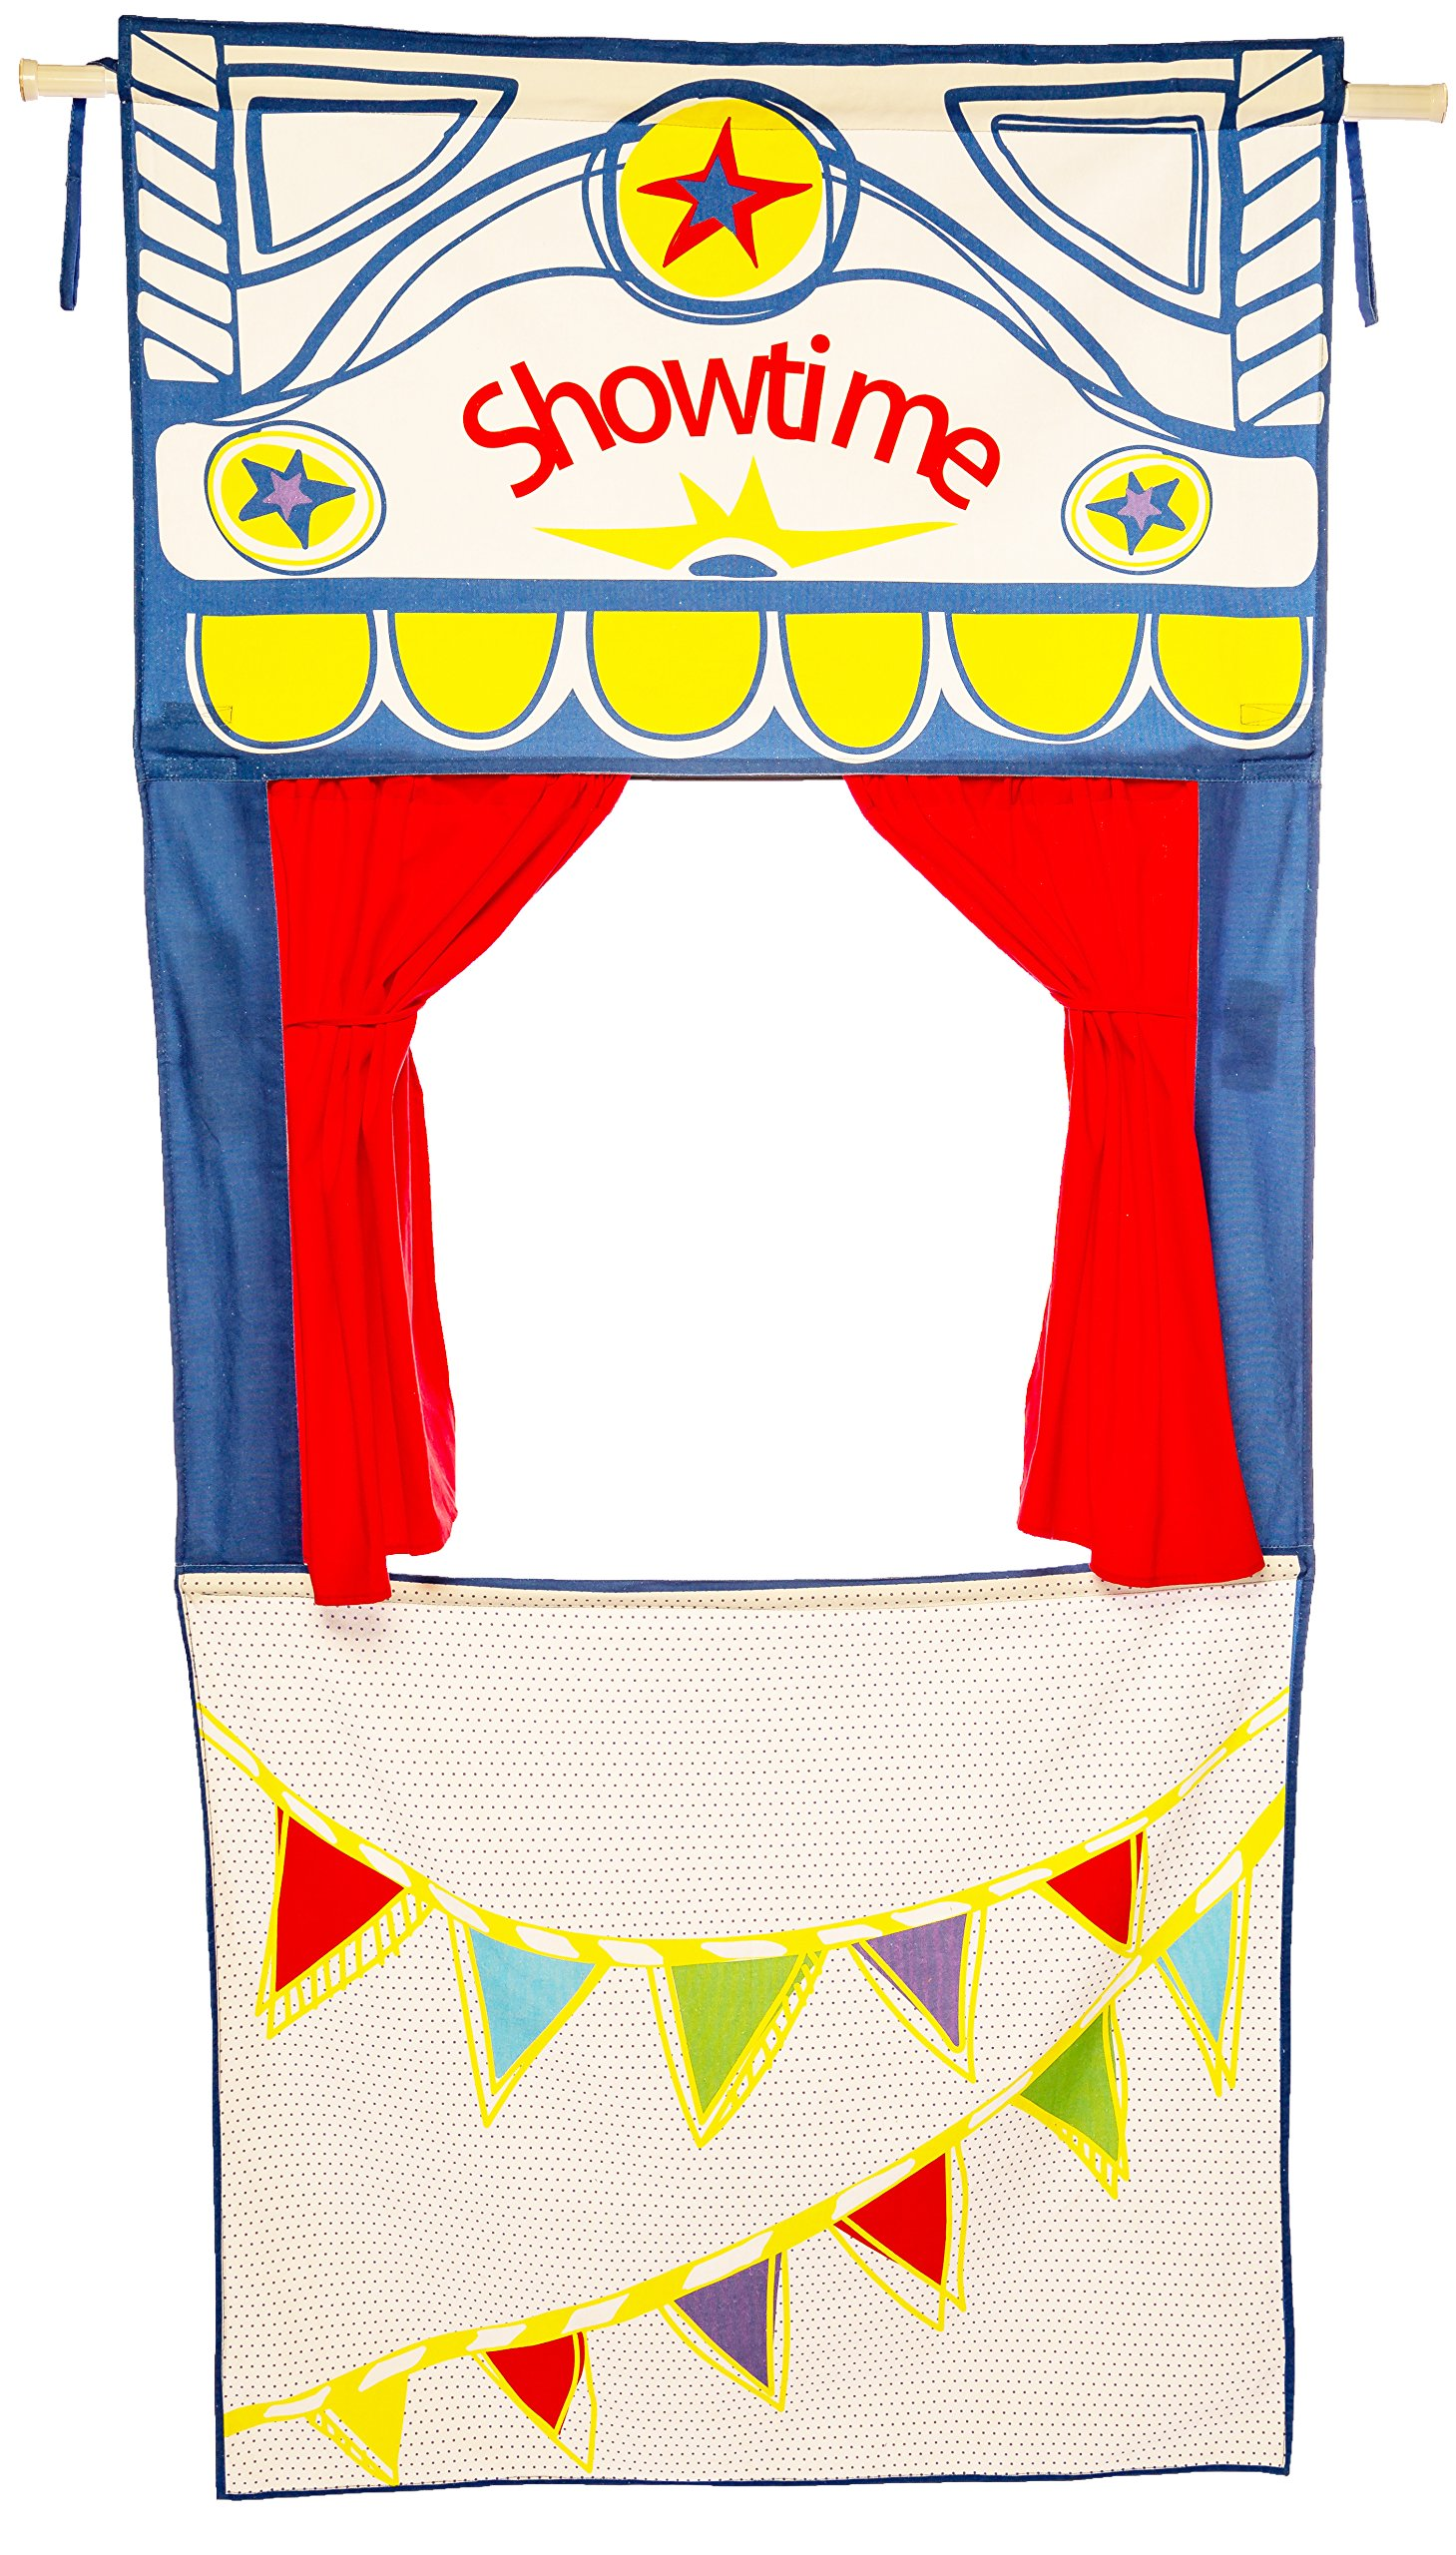 MMP Living Doorway Puppet Theater with adjustable rod, tie-back curtains - over 6 feet tall, 100% Cotton